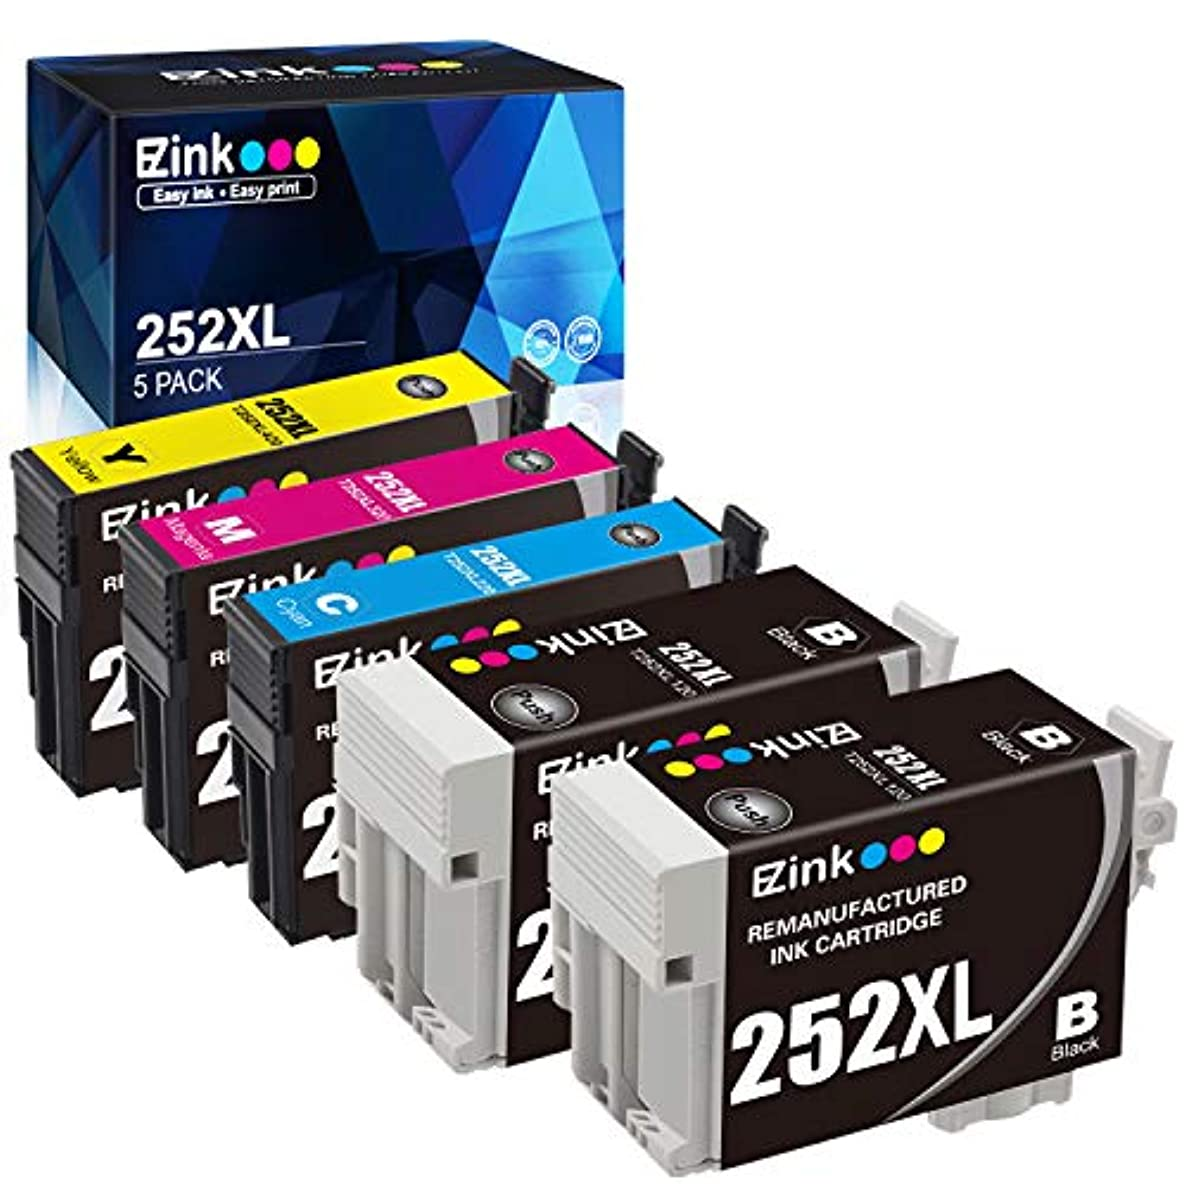 E-Z Ink (TM) Remanufactured Ink Cartridge Replacement for Epson 252XL 252 XL T252 T252XL120 to use with Workforce WF-3640 WF-3620 WF-7110 WF-7710 WF-7720 (2 Black, 1 Cyan, 1 Magenta, 1 Yellow) 5 Pack